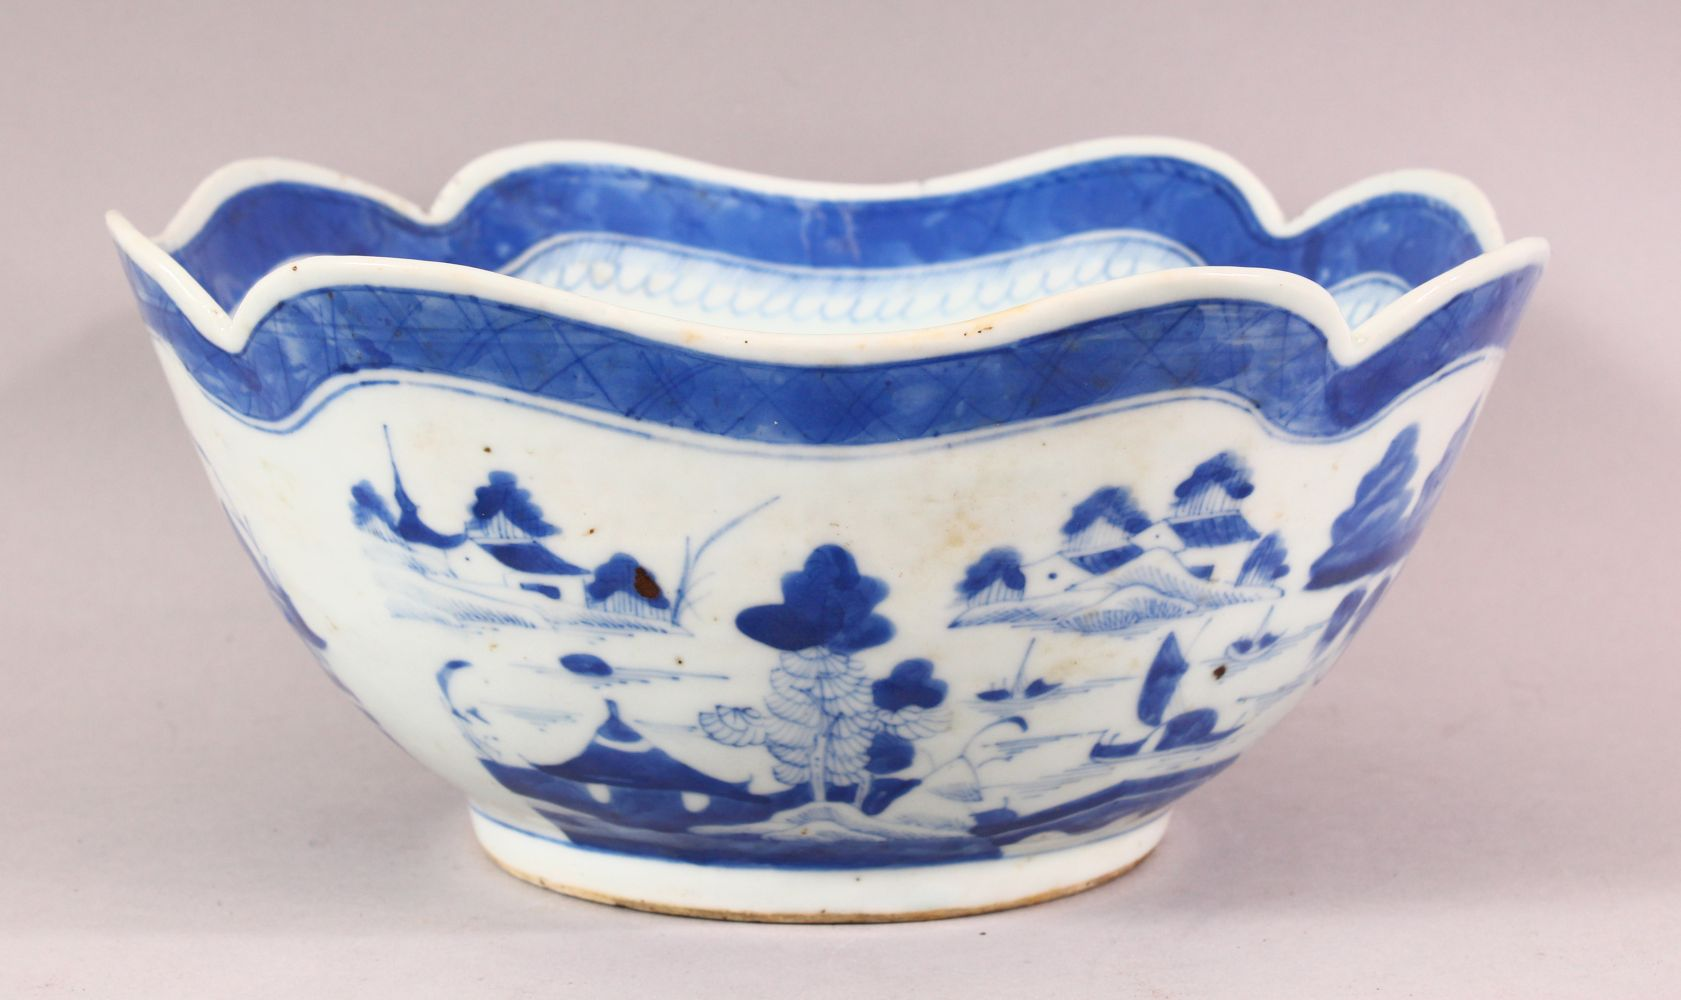 AN 18TH / 19TH CENTURY CHINESE BLUE & WHITE PORCELAIN BOWL, of quatrefoil form, decorated with